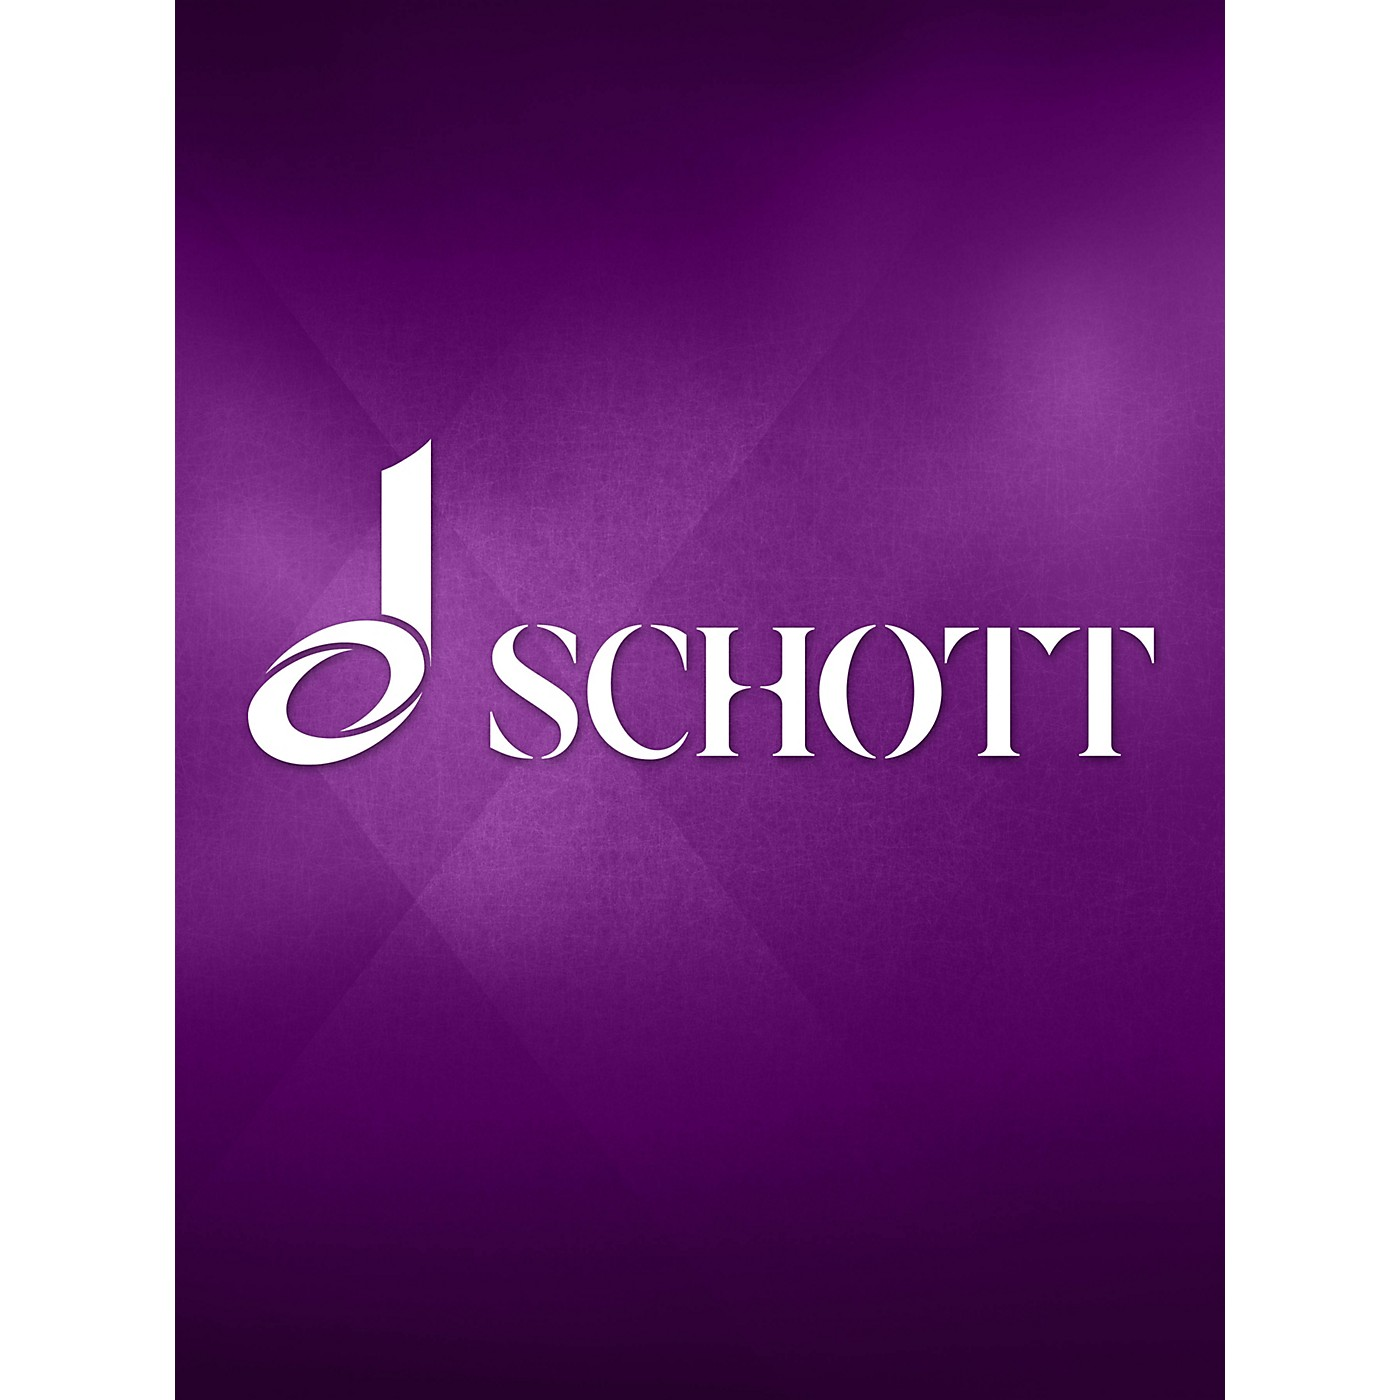 Schott 8 Stücke Op. 44, No 3 for String Quintet (Score) Schott Series Composed by Paul Hindemith thumbnail